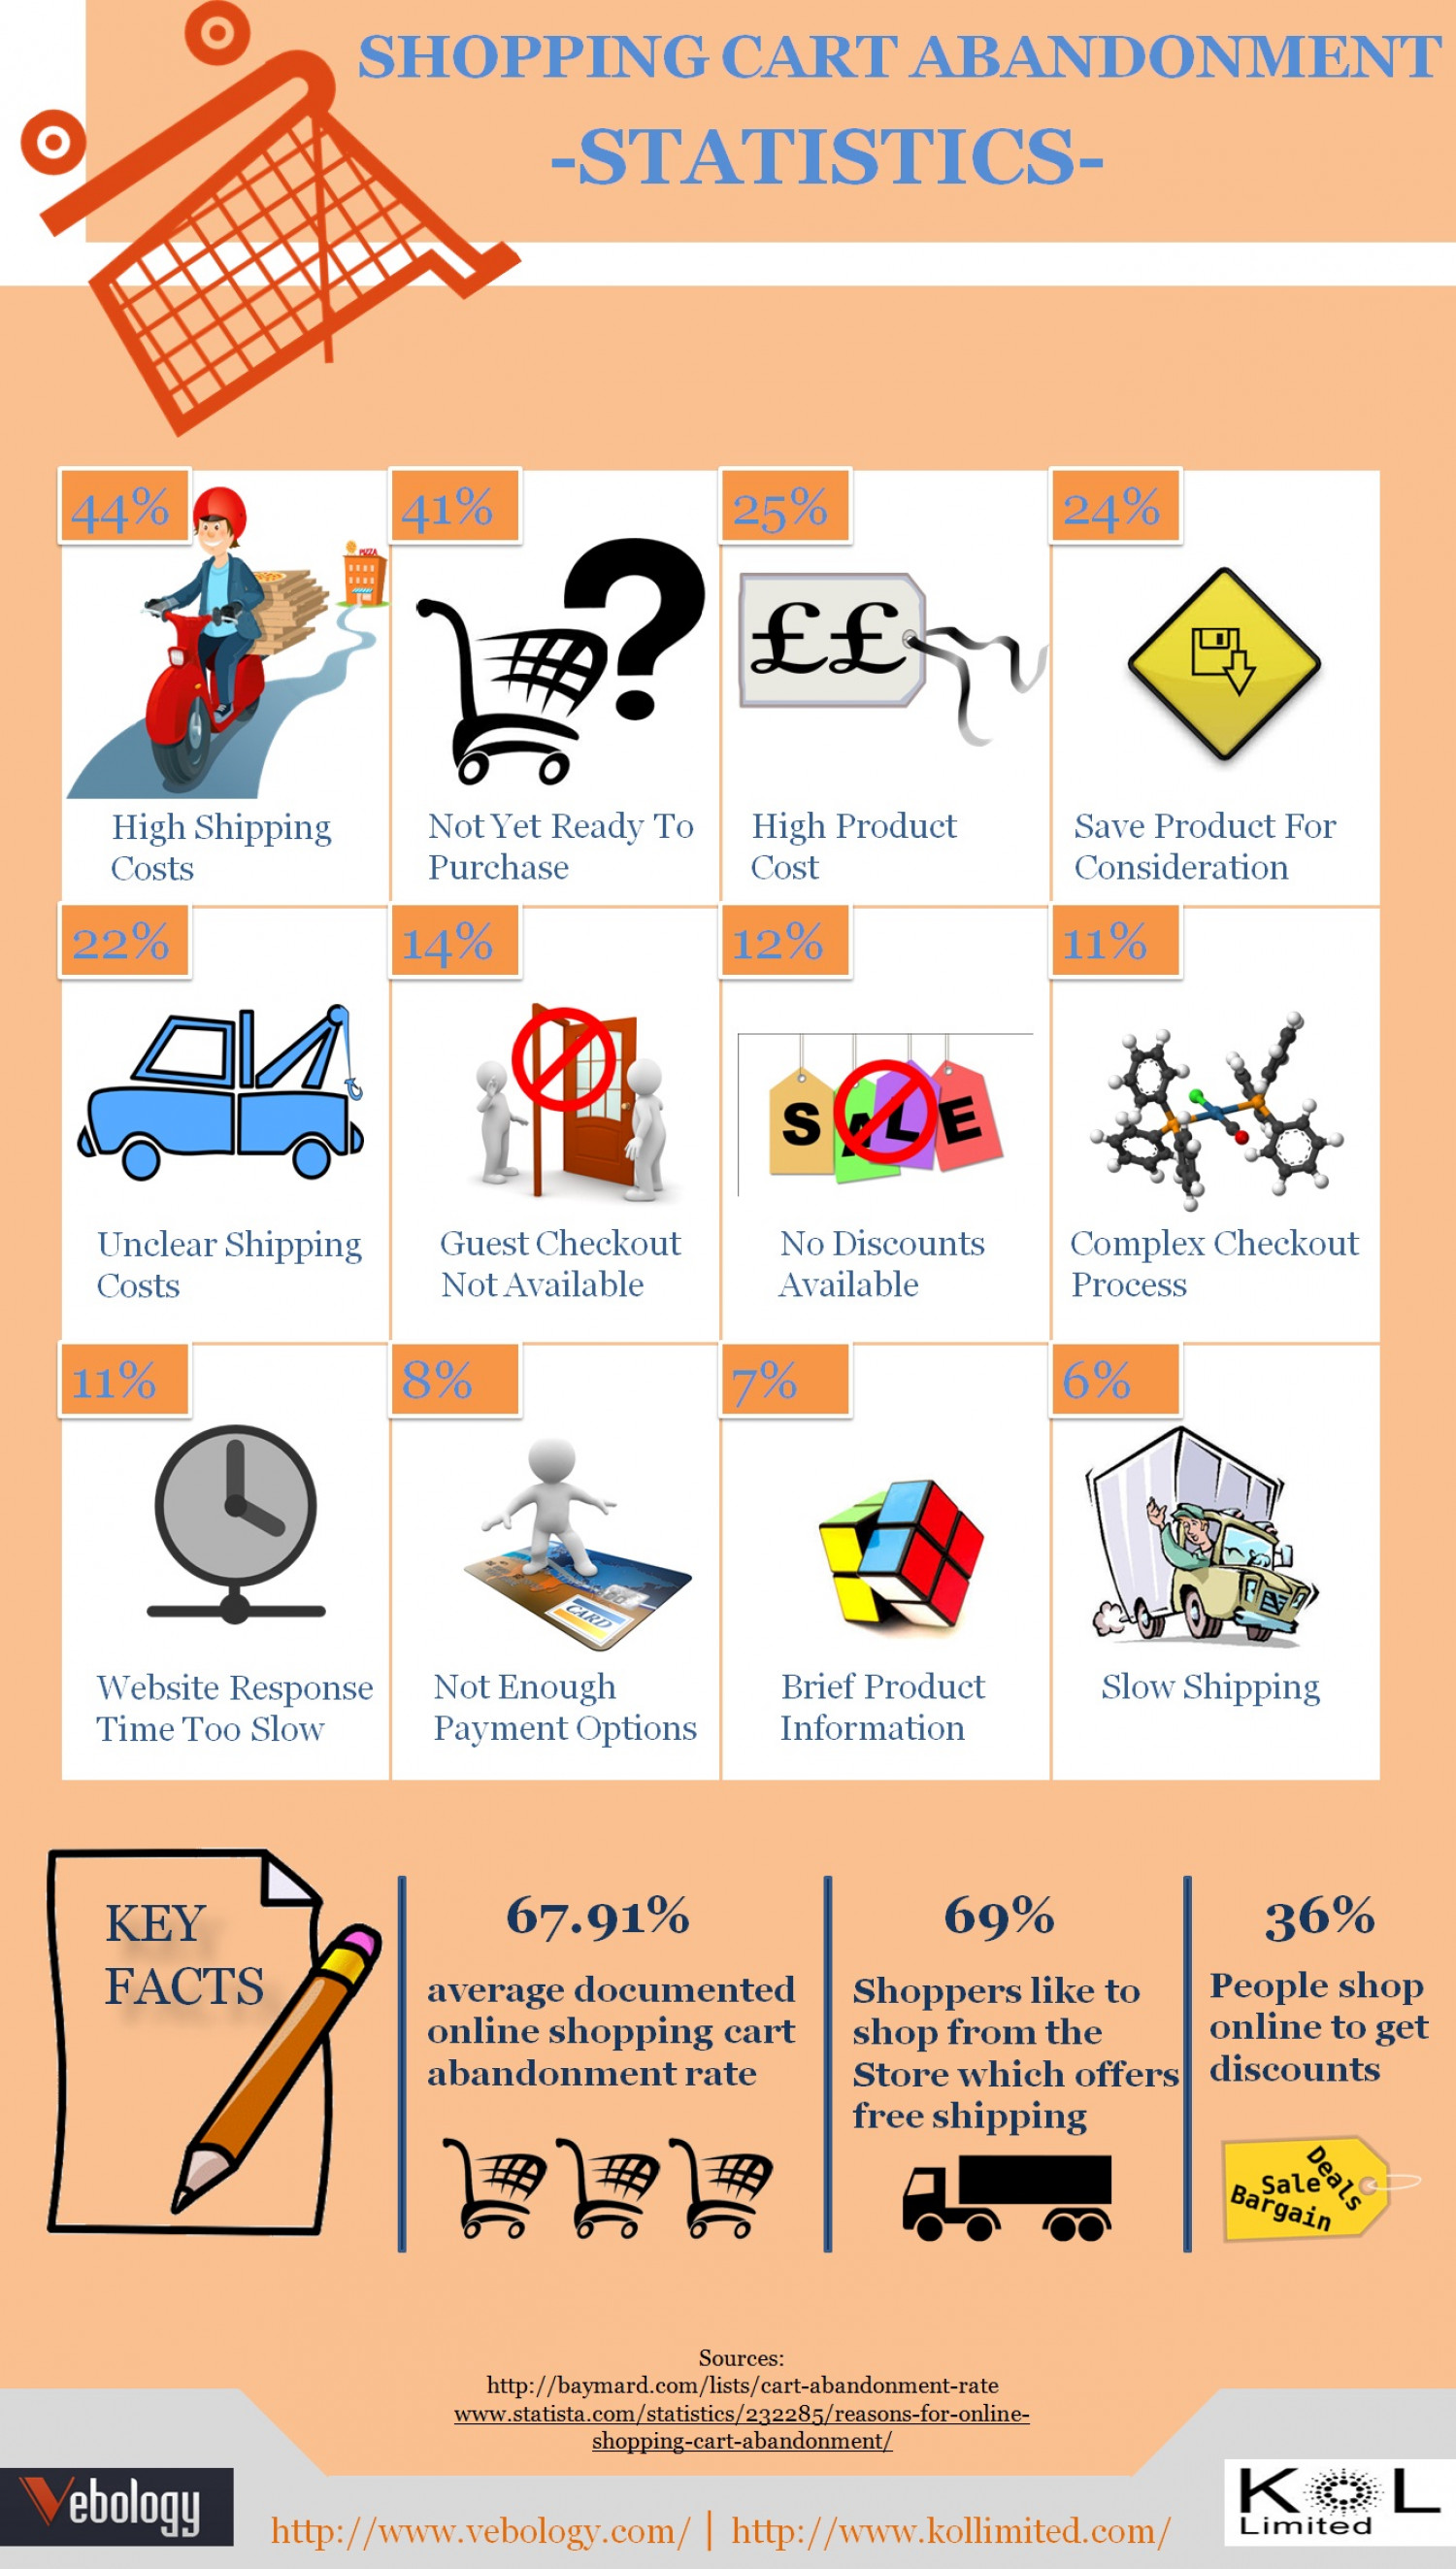 Shopping Cart Abandonment- Key Stats and Facts  Infographic